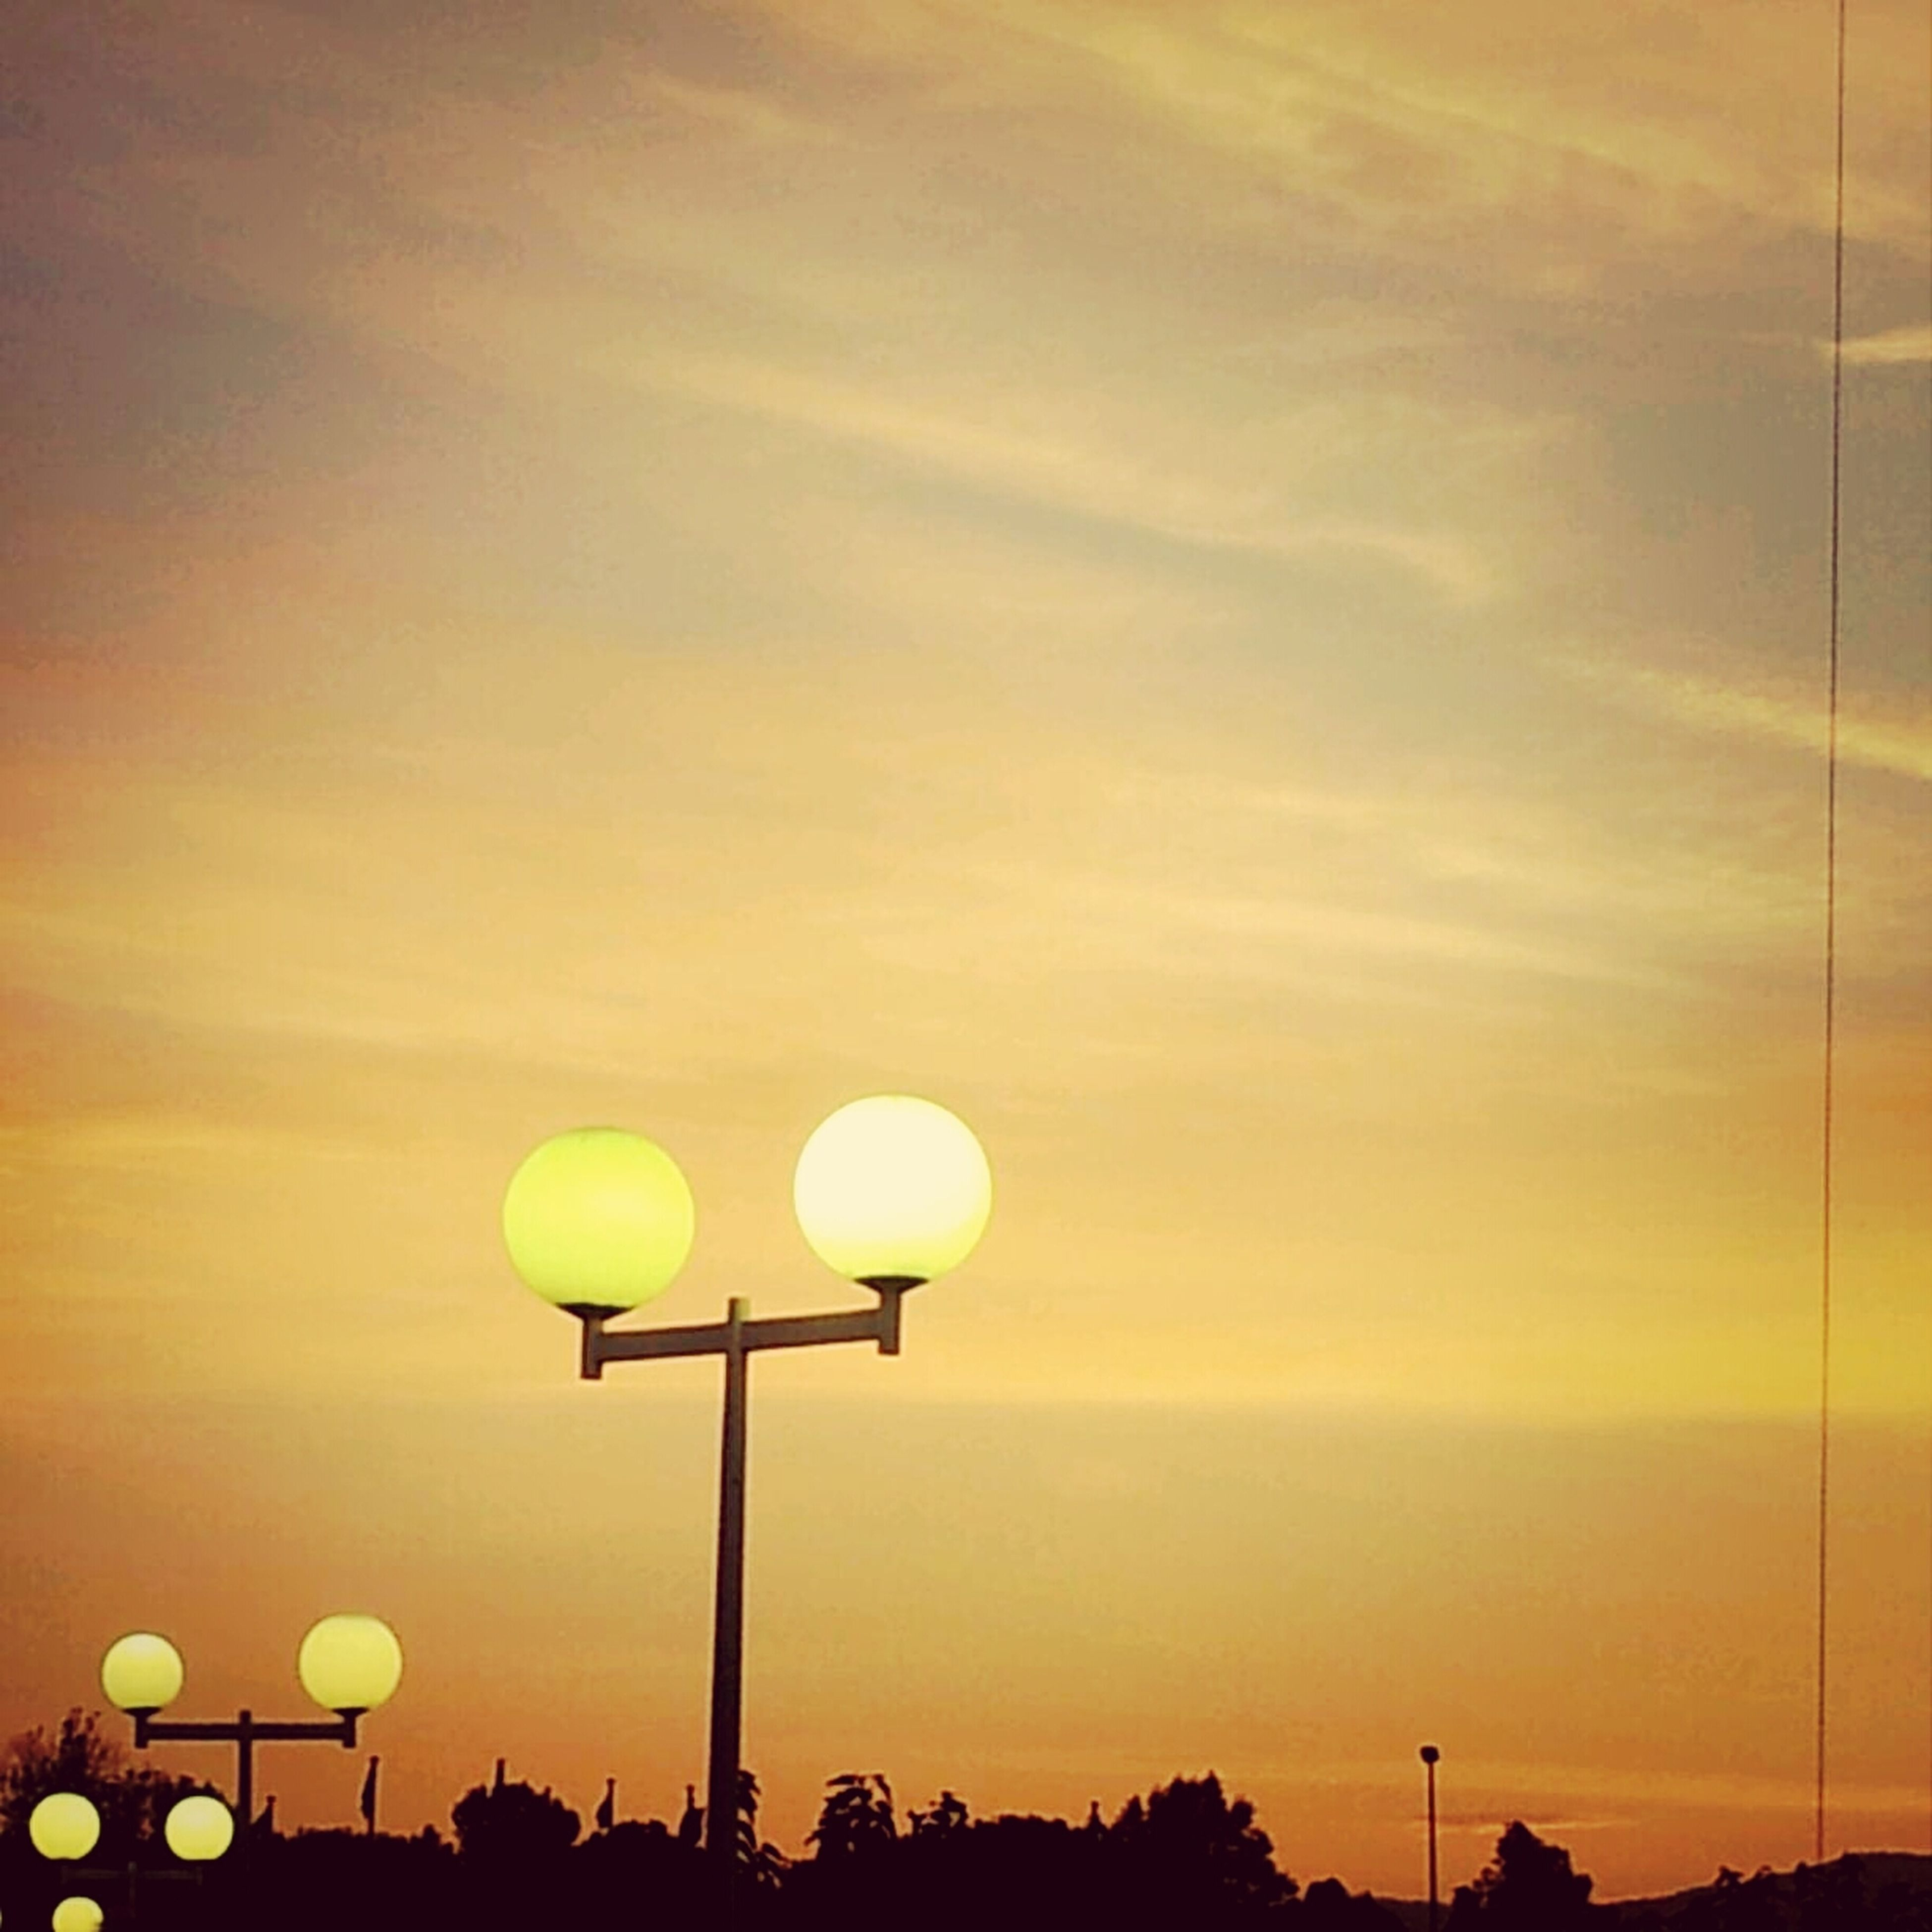 low angle view, street light, lighting equipment, sky, sunset, yellow, electricity, silhouette, orange color, pole, nature, electric light, illuminated, no people, outdoors, beauty in nature, tree, tranquility, cloud - sky, dusk